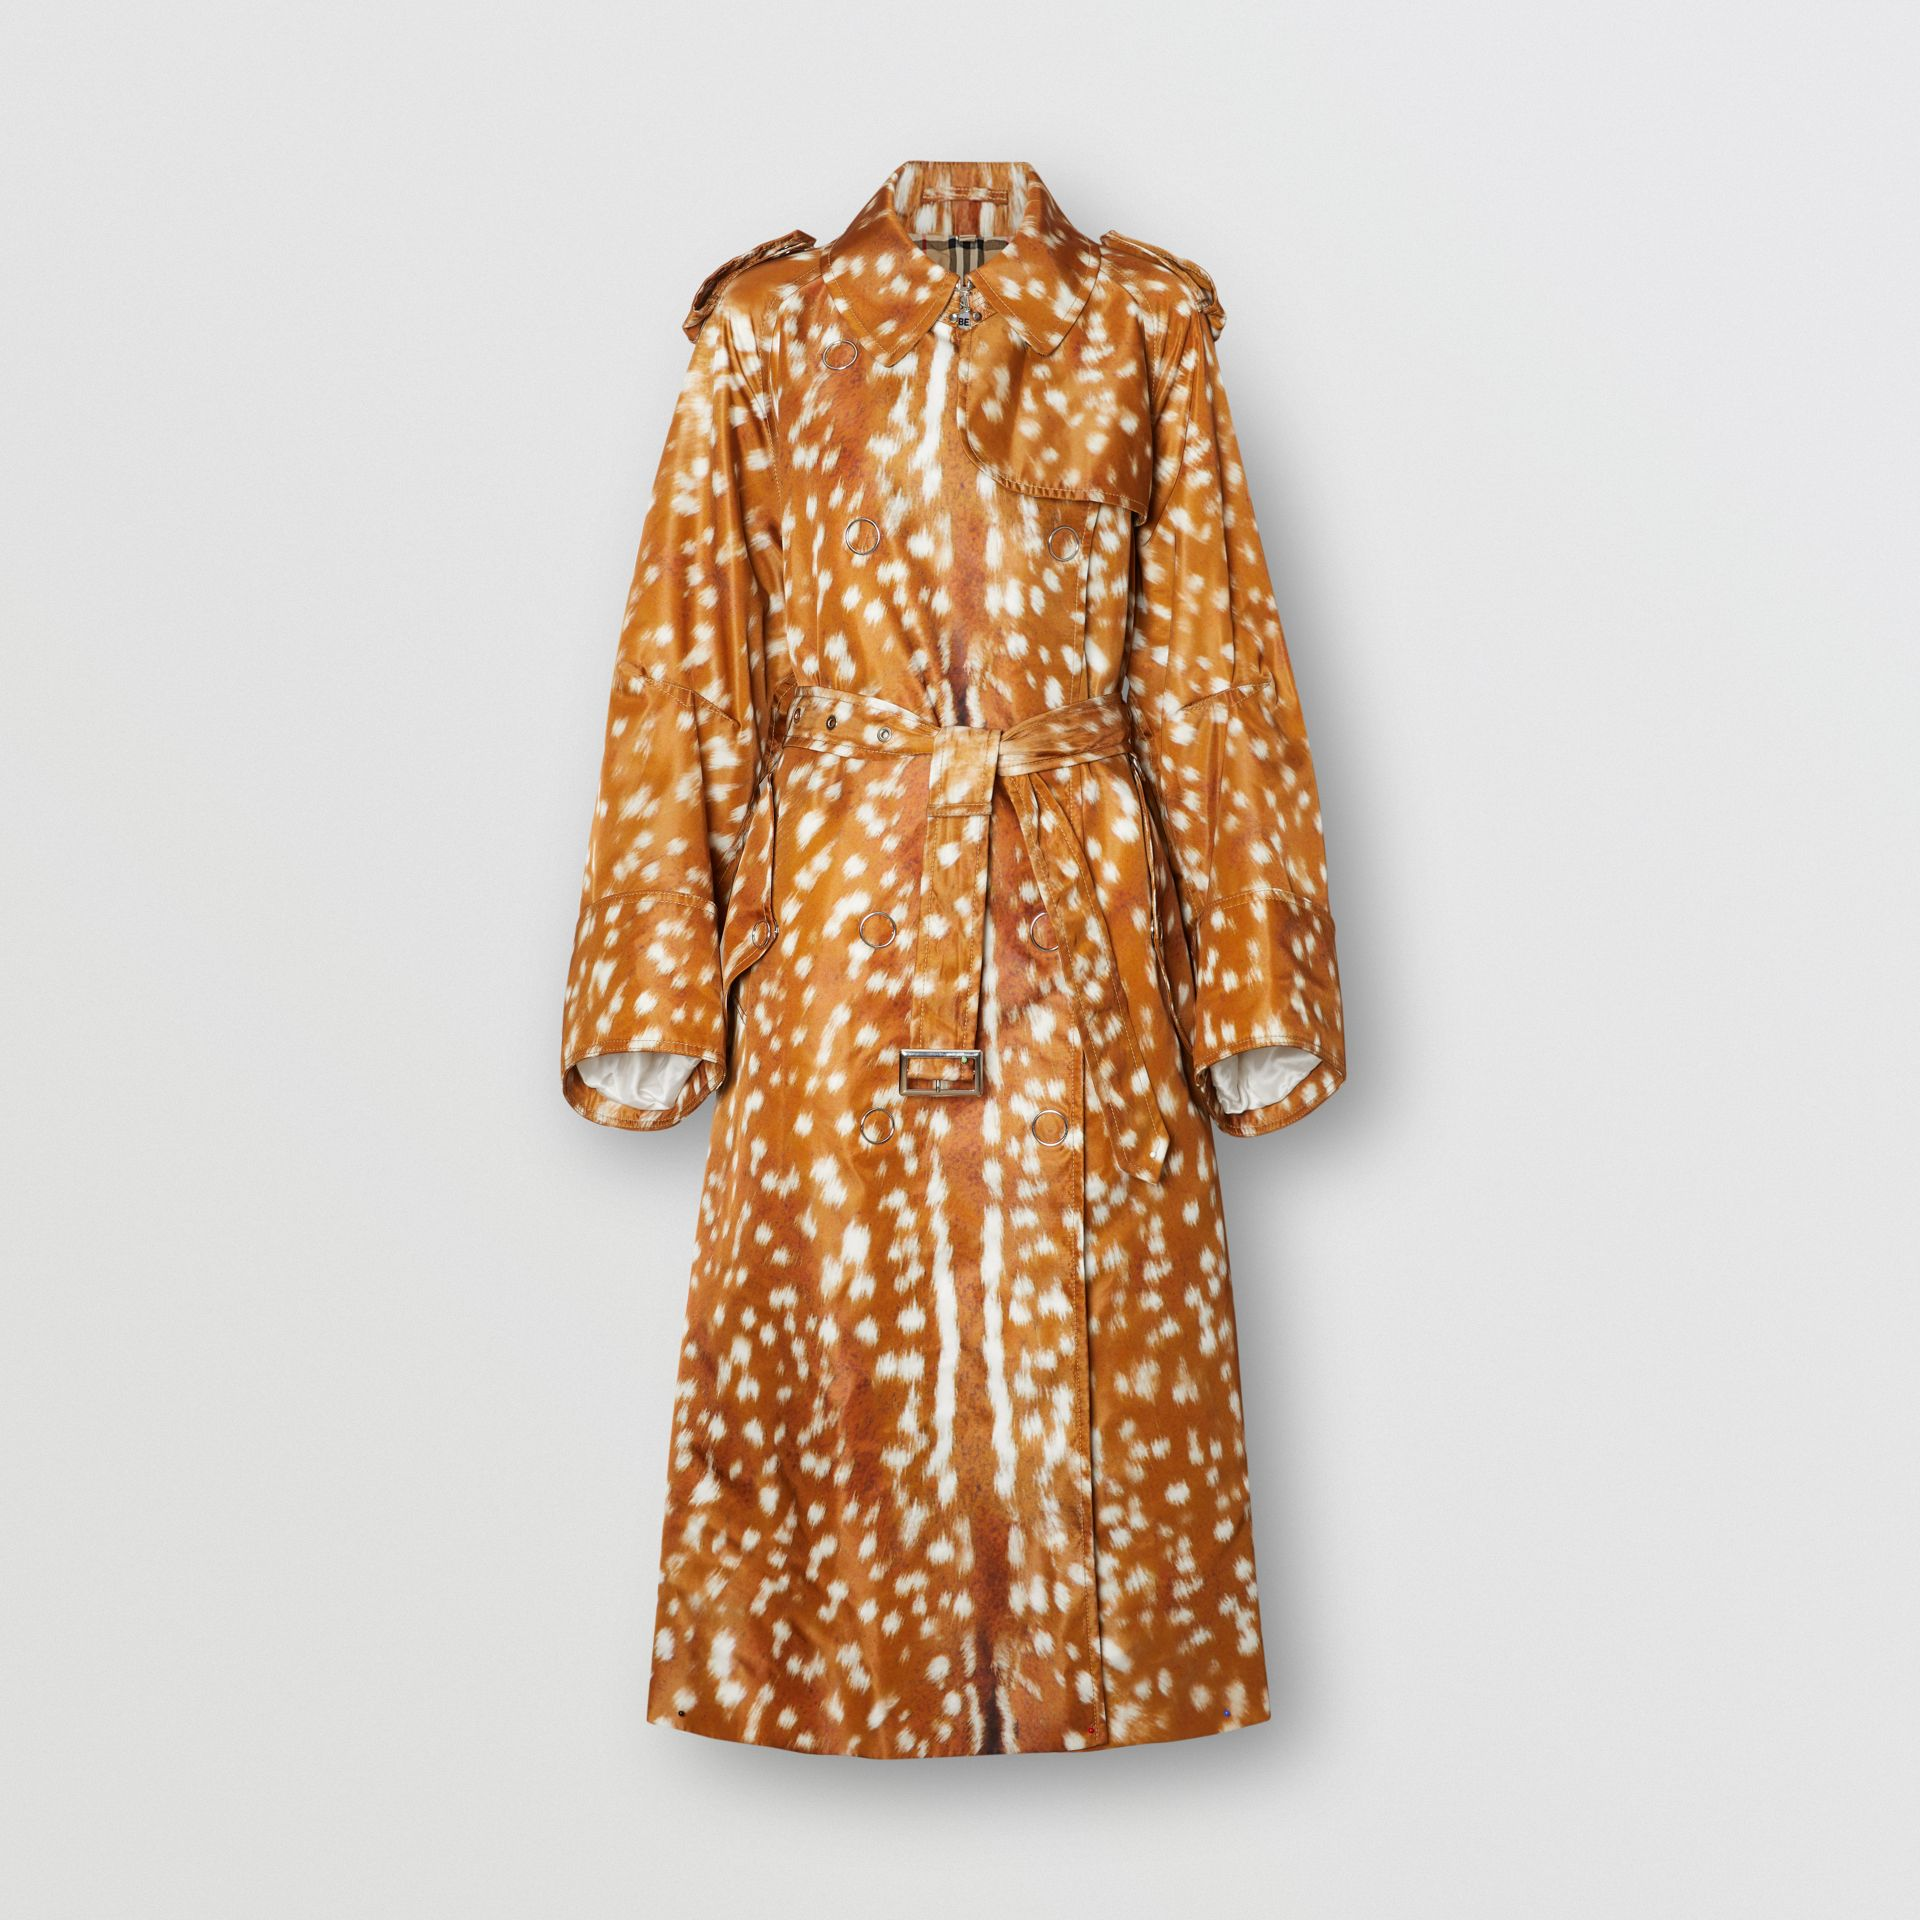 Exaggerated Cuff Deer Print Nylon Trench Coat in Honey - Women | Burberry Canada - gallery image 3